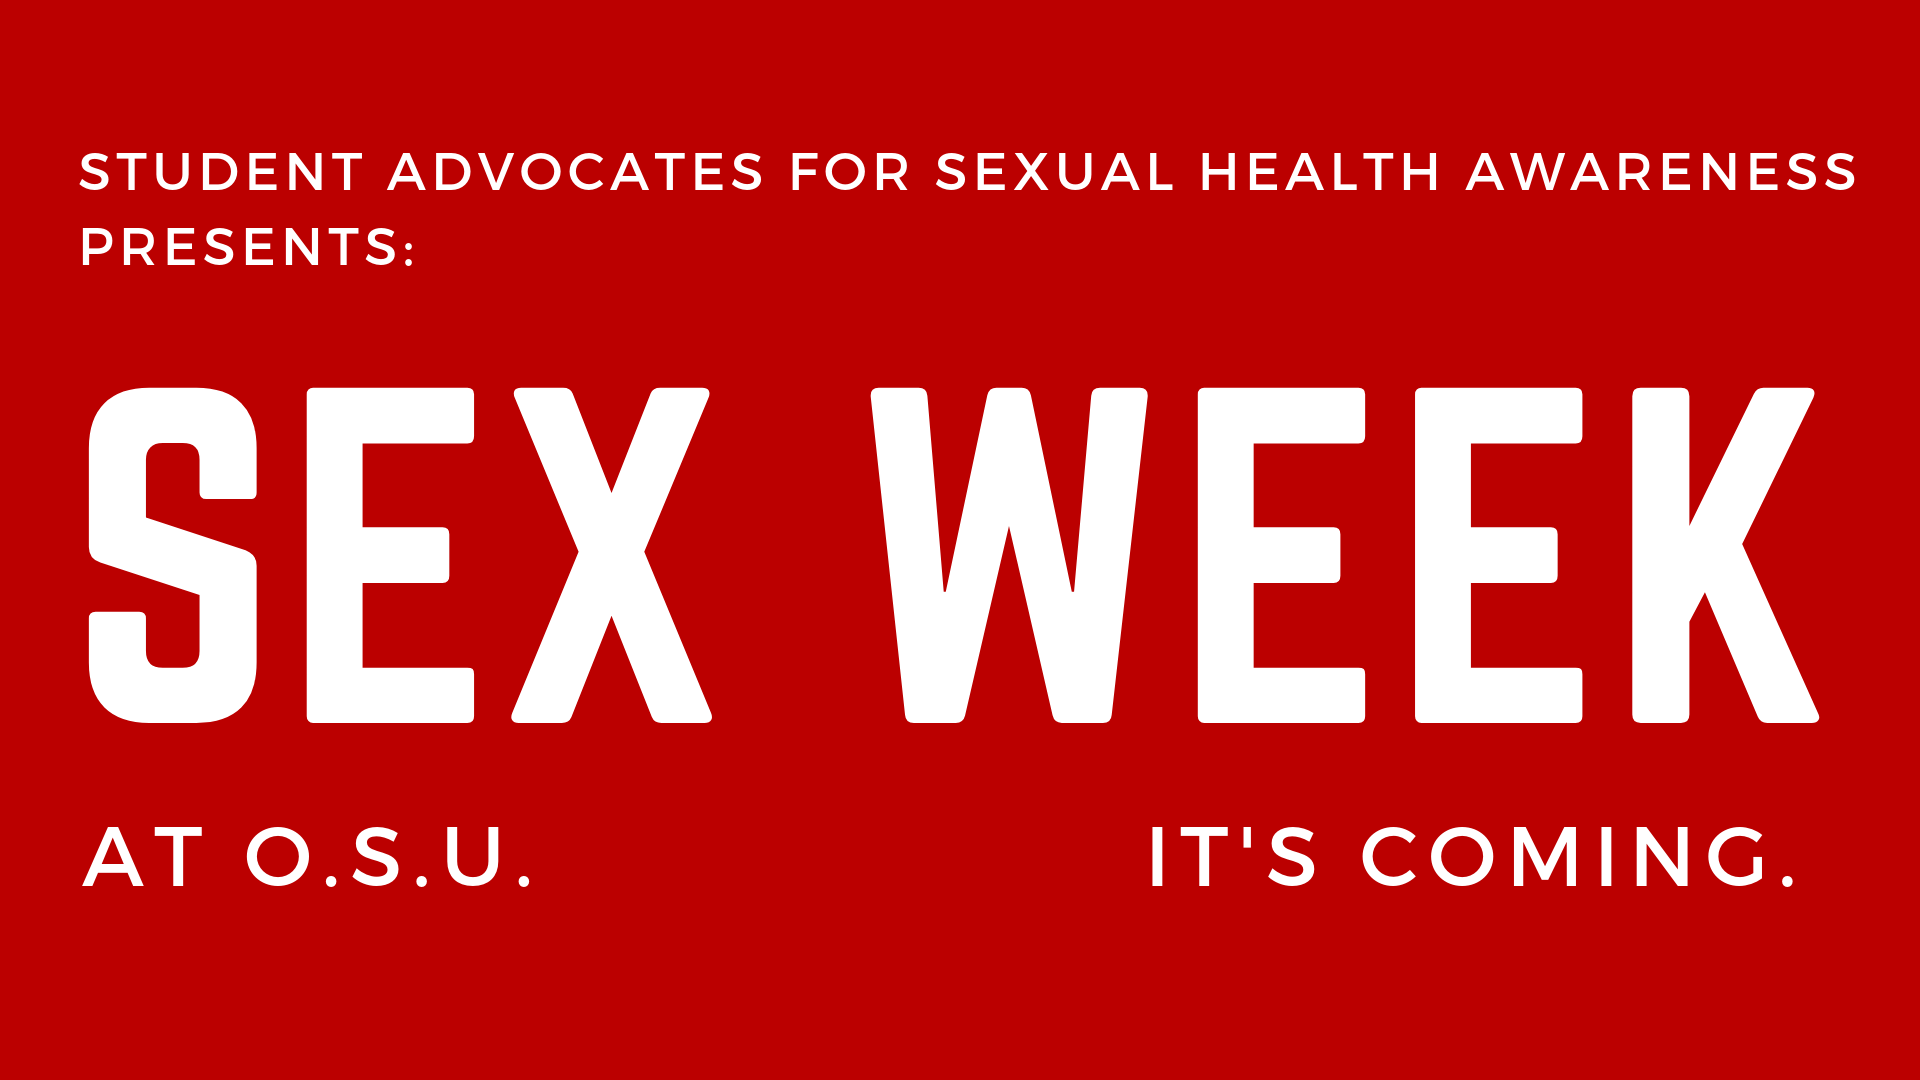 Sex week at osu - Looking for general info on Sex Week at OSU? We gotcha. Click on the link below to check out our mission, read some FAQs, and see who we work with.